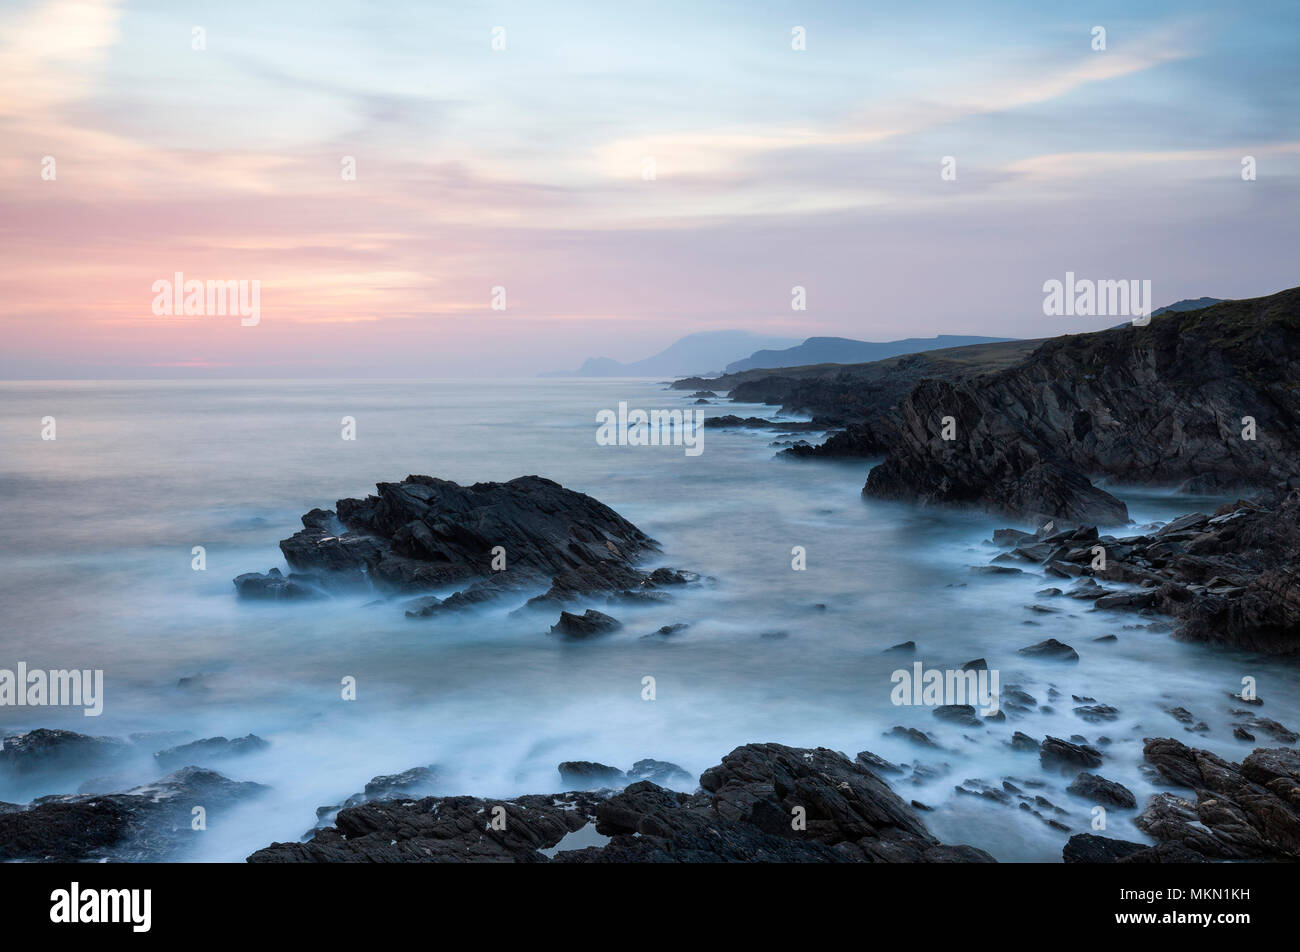 Sunset over the coast of Achill Island, a destination on Irelands Wild Atlantic way, County Mayo Ireland - Stock Image